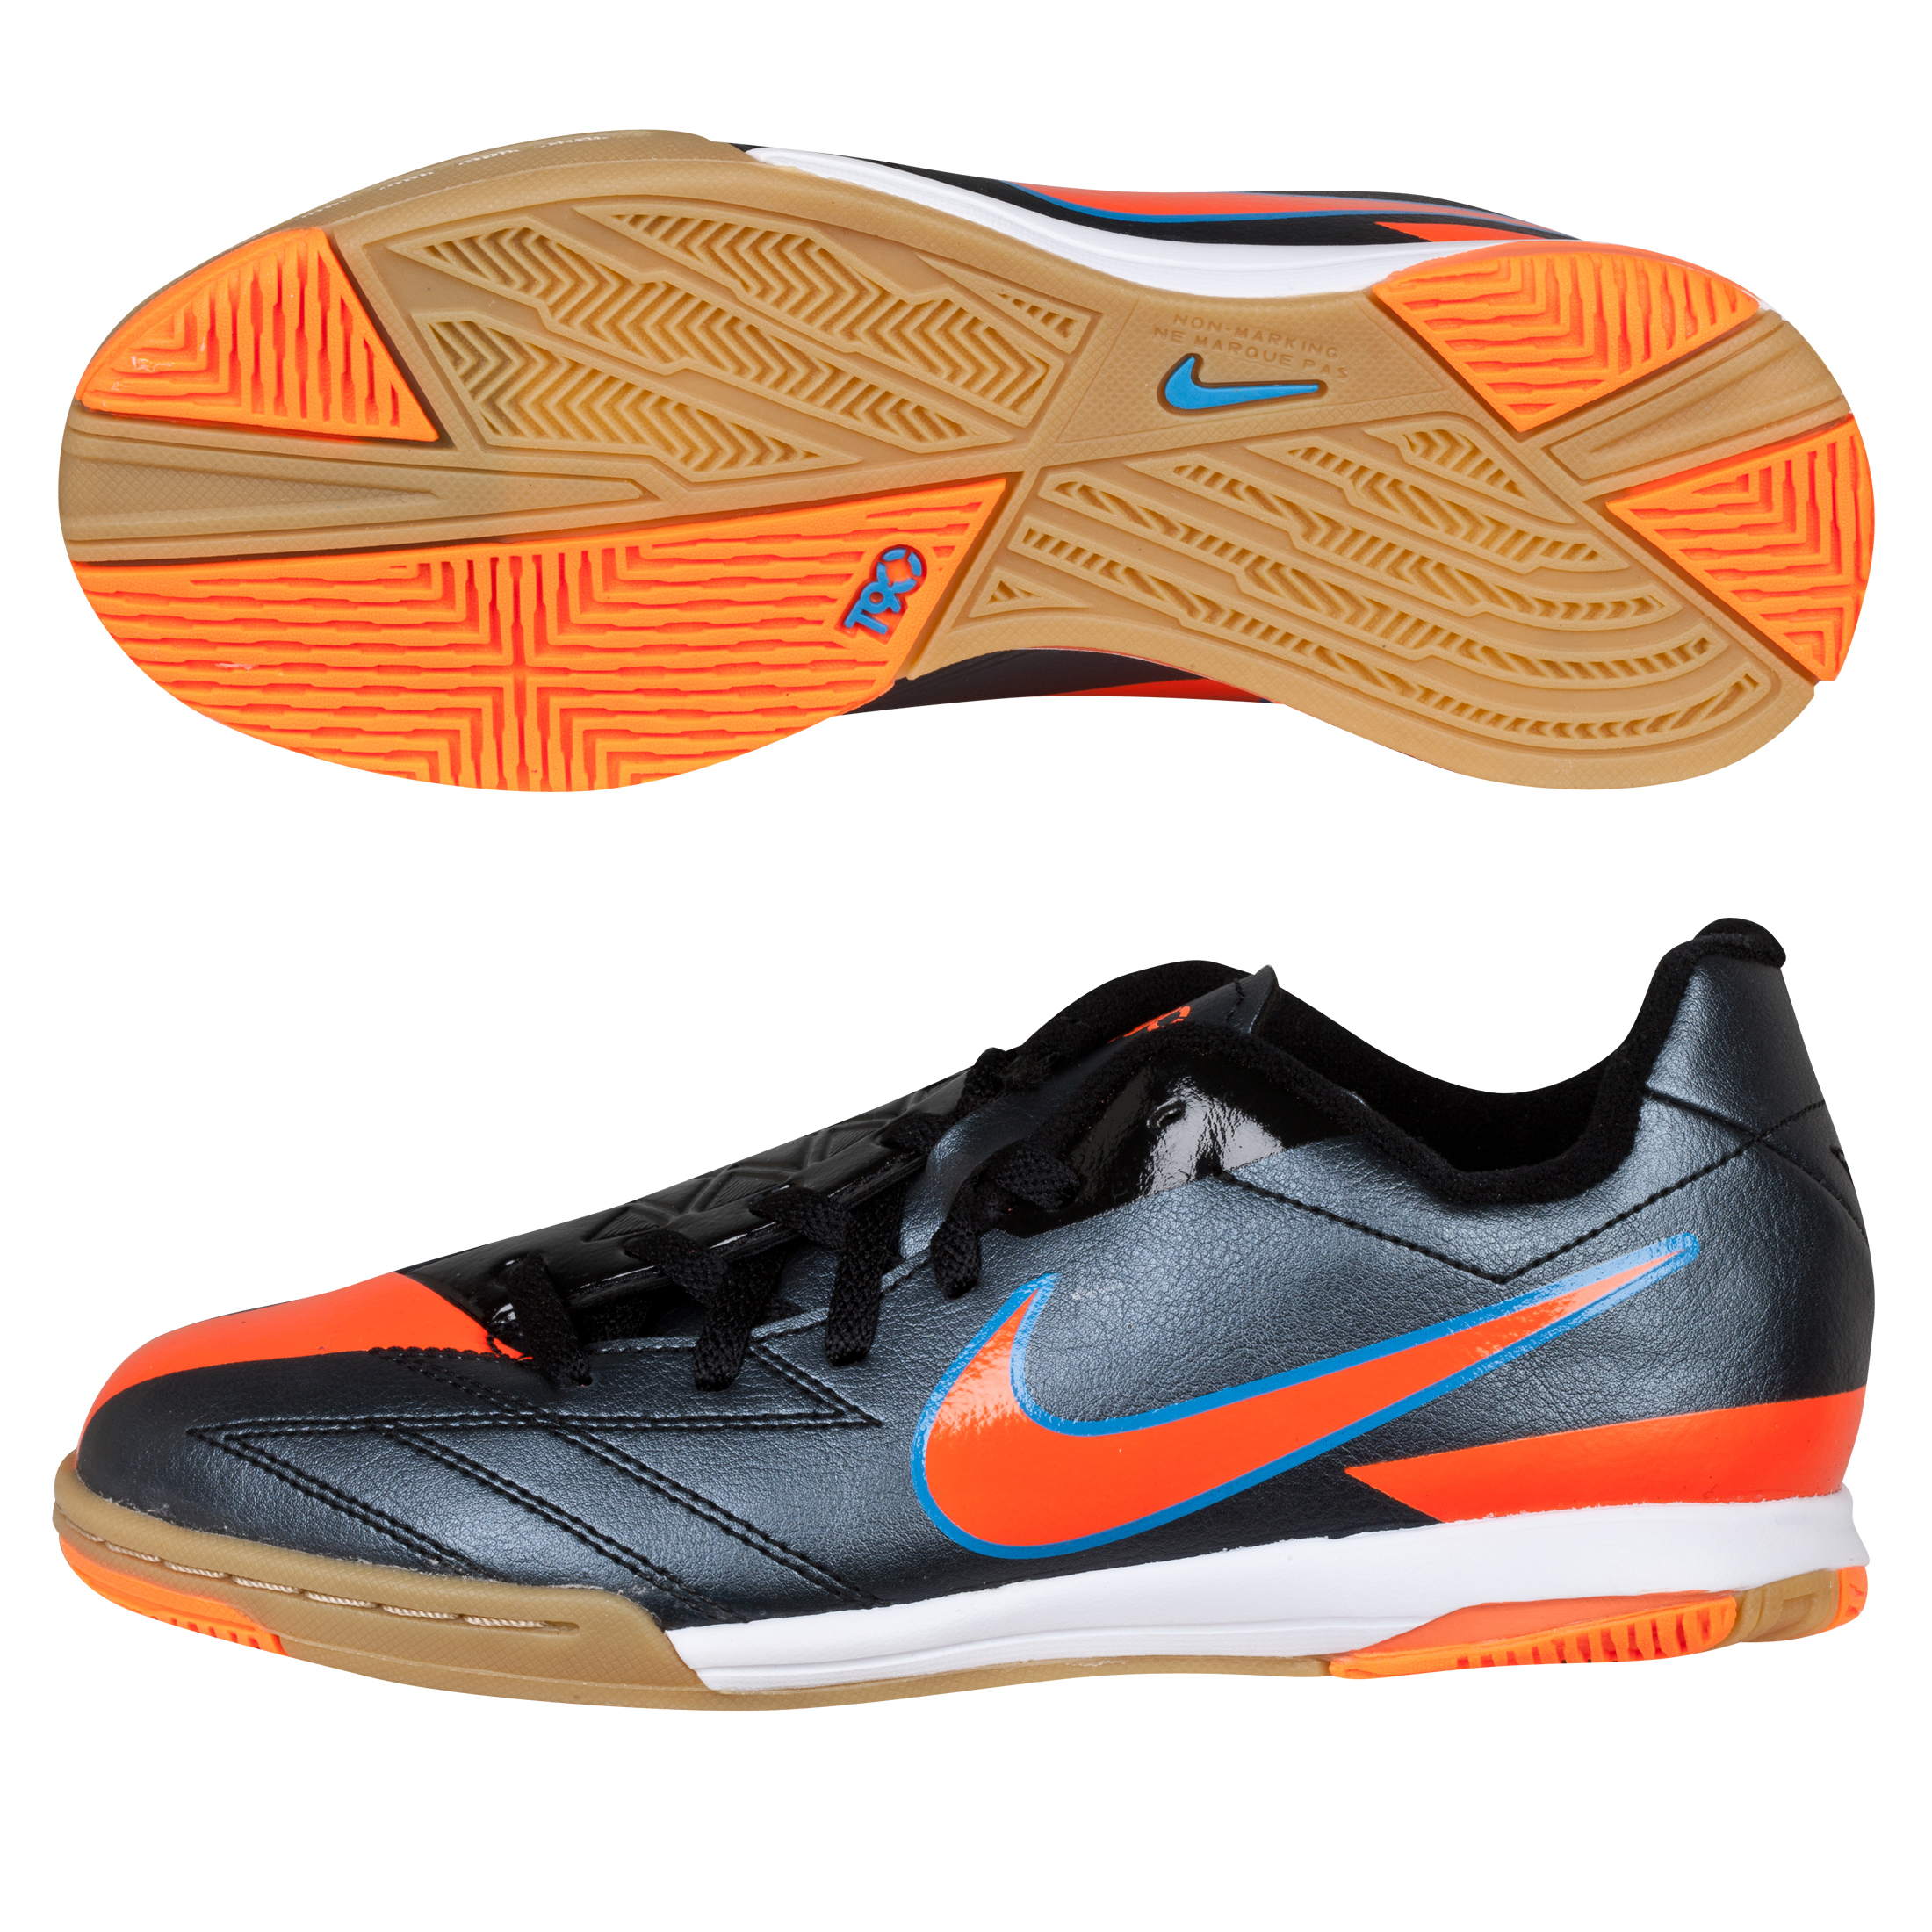 Nike Total90 Shoot IV Trainers - Black/Total Orange/Blue Glow - Kids